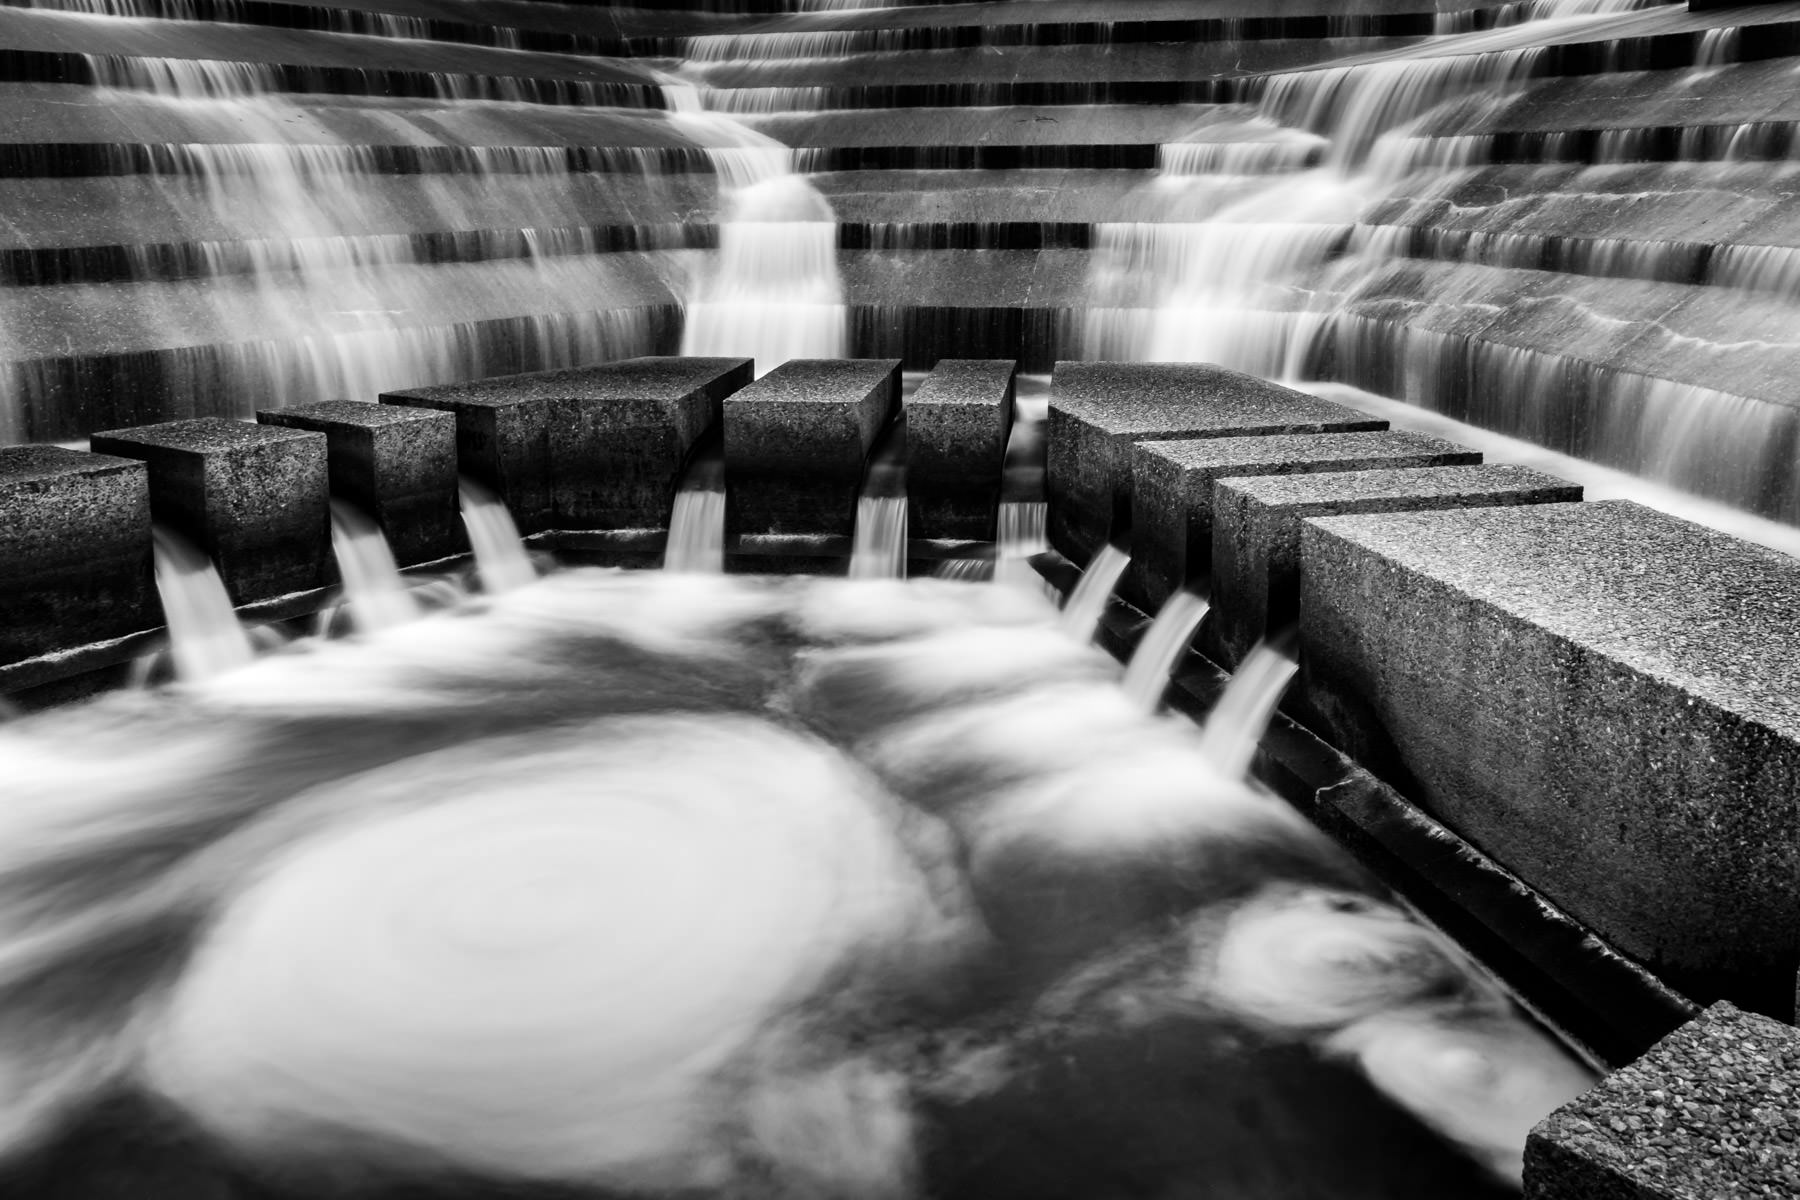 A maelstrom forms in the Active Pool at the Philip Johnson-designed Fort Worth Water Gardens in the south end of Downtown Fort Worth, Texas.